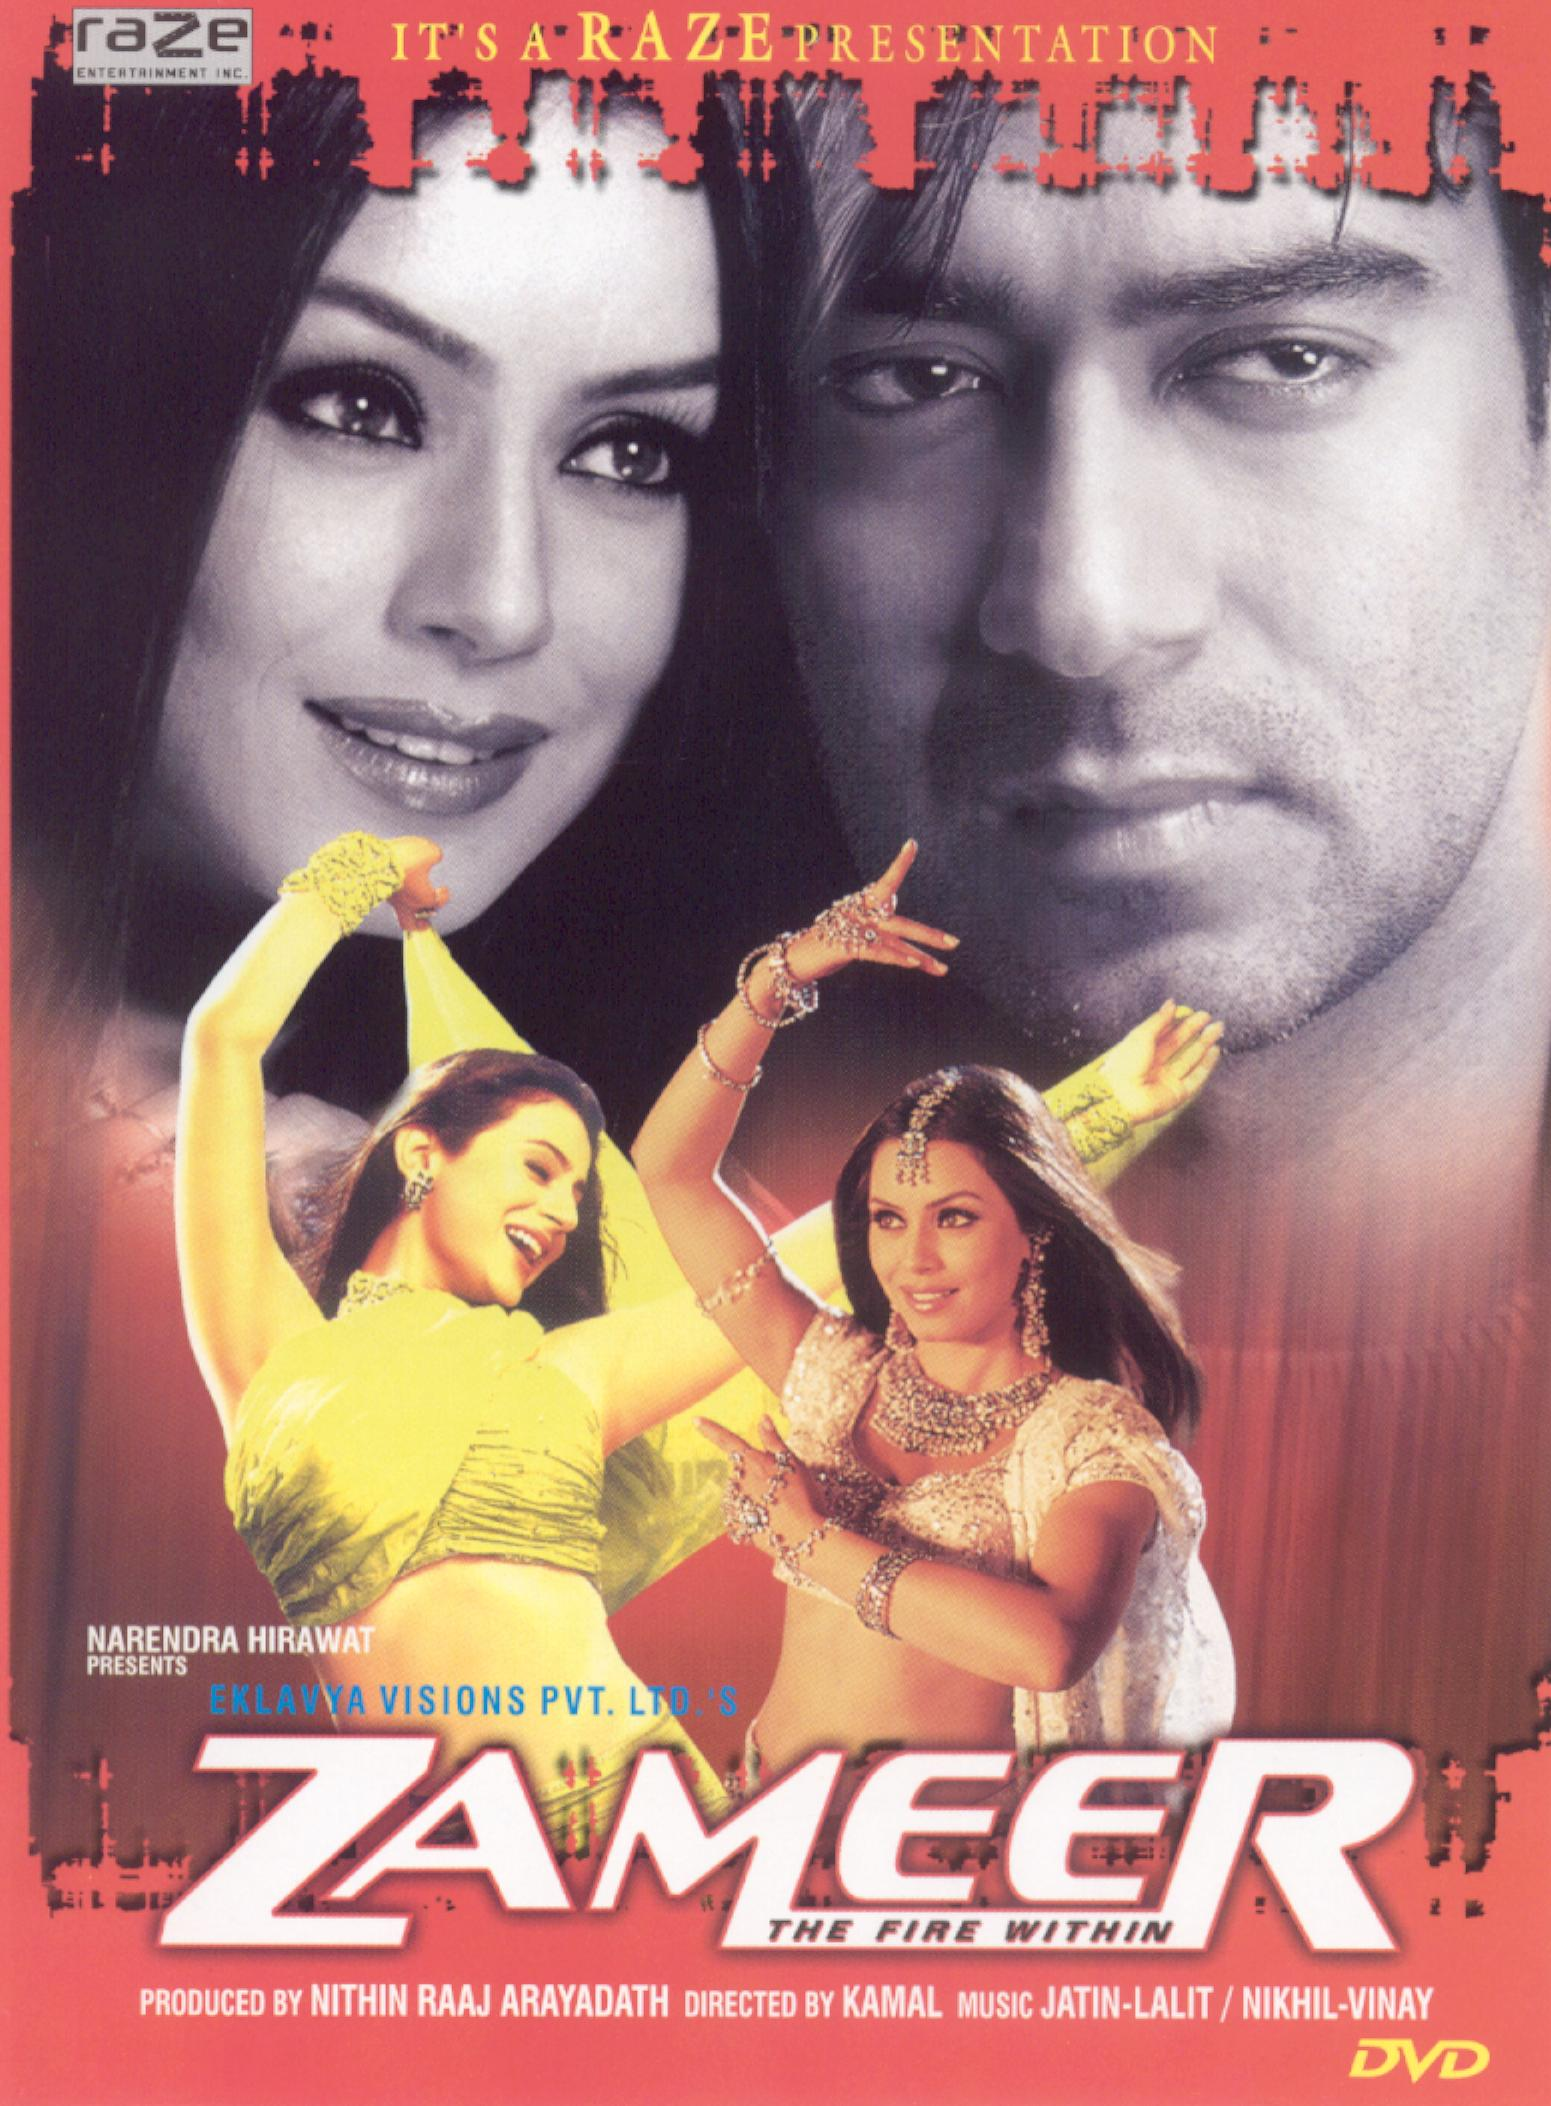 Zameer: The Fire Within